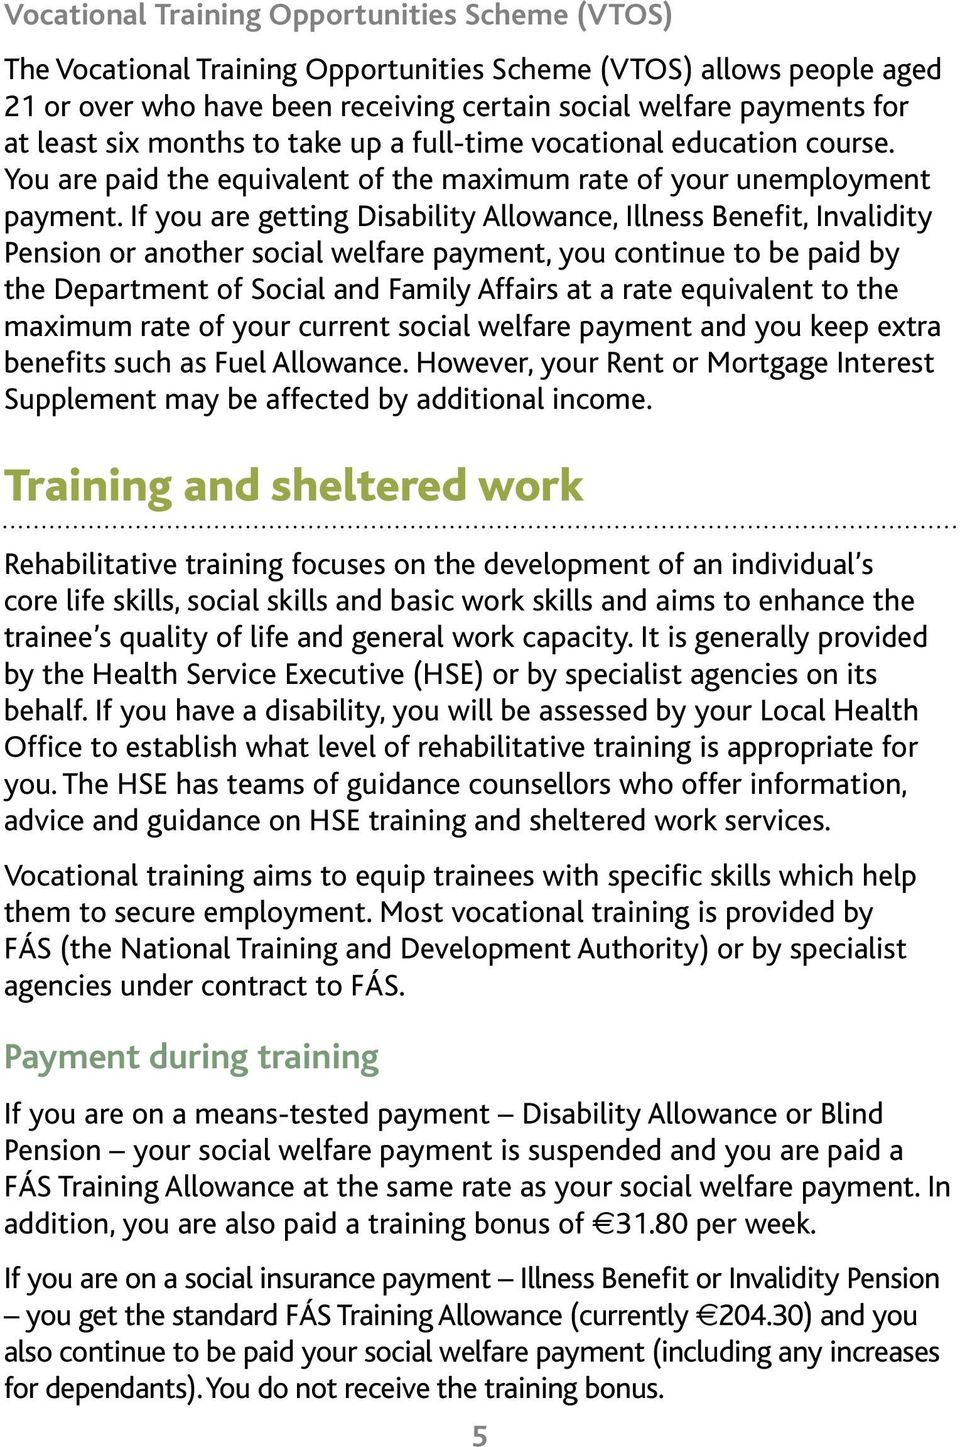 If you are getting Disability Allowance, Illness Benefit, Invalidity Pension or another social welfare payment, you continue to be paid by the Department of Social and Family Affairs at a rate